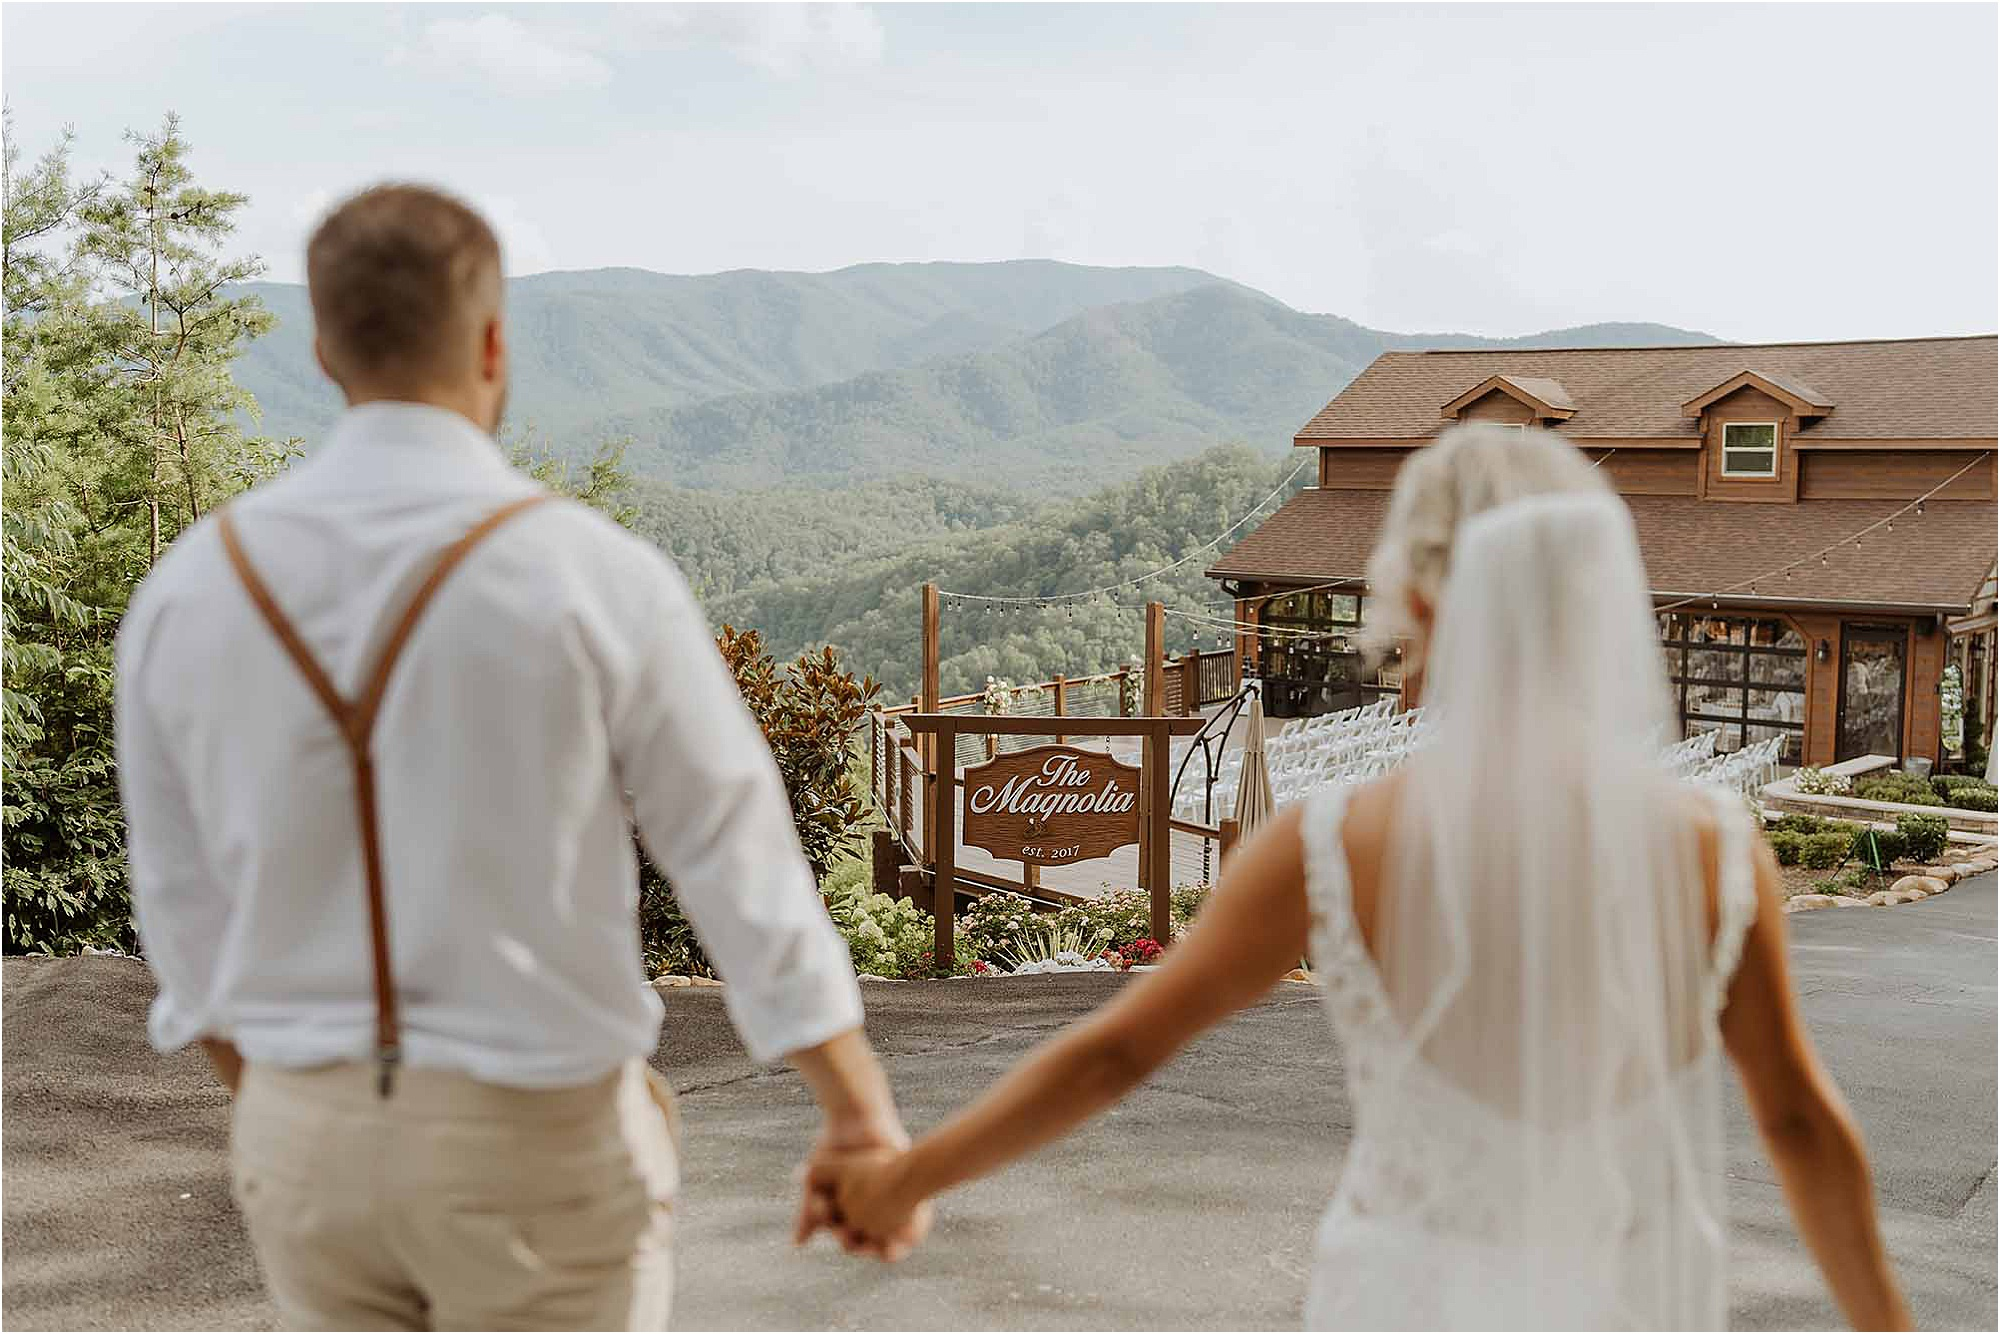 Summer Wedding at The Magnolia Venue in Pigeon Forge, Tennessee